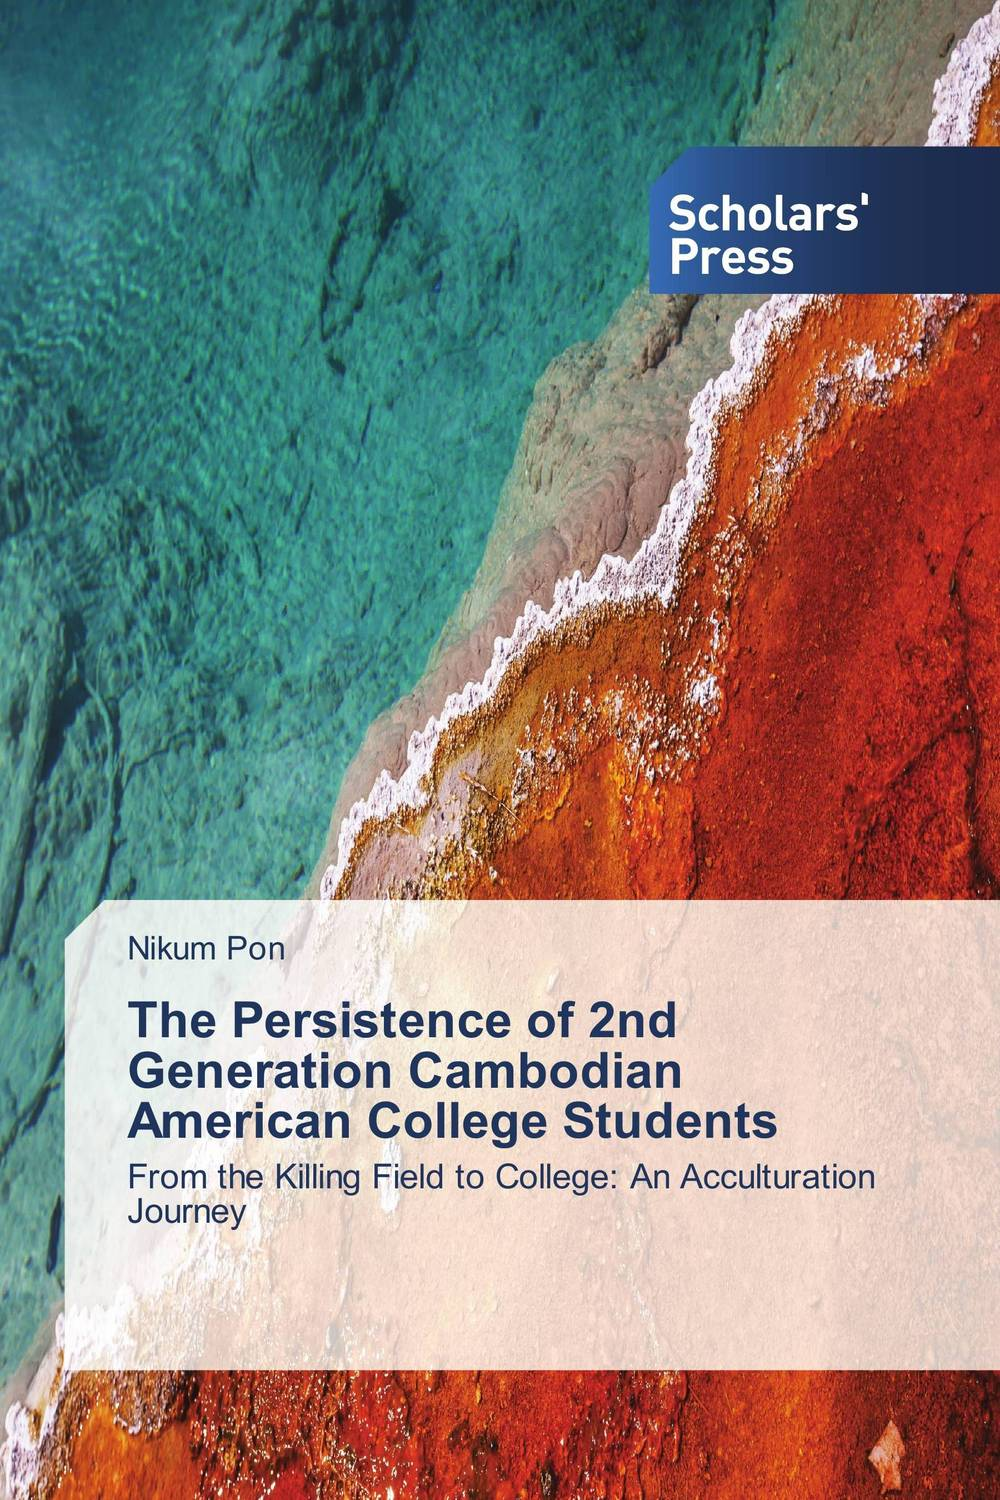 The Persistence of 2nd Generation Cambodian American College Students doug lemov teach like a champion 2 0 62 techniques that put students on the path to college